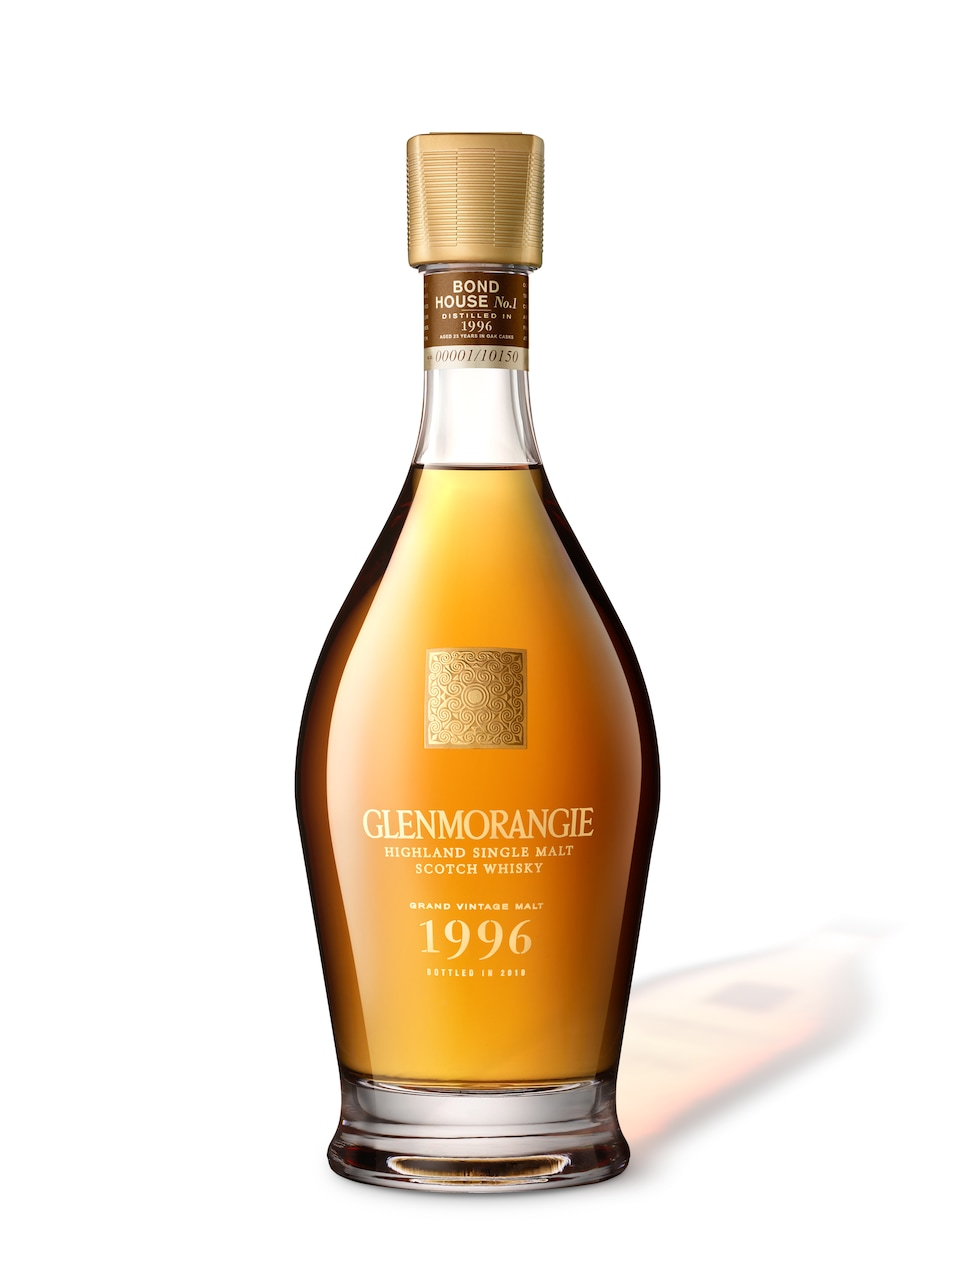 01_Bottle image_Grand vintage malt 1996